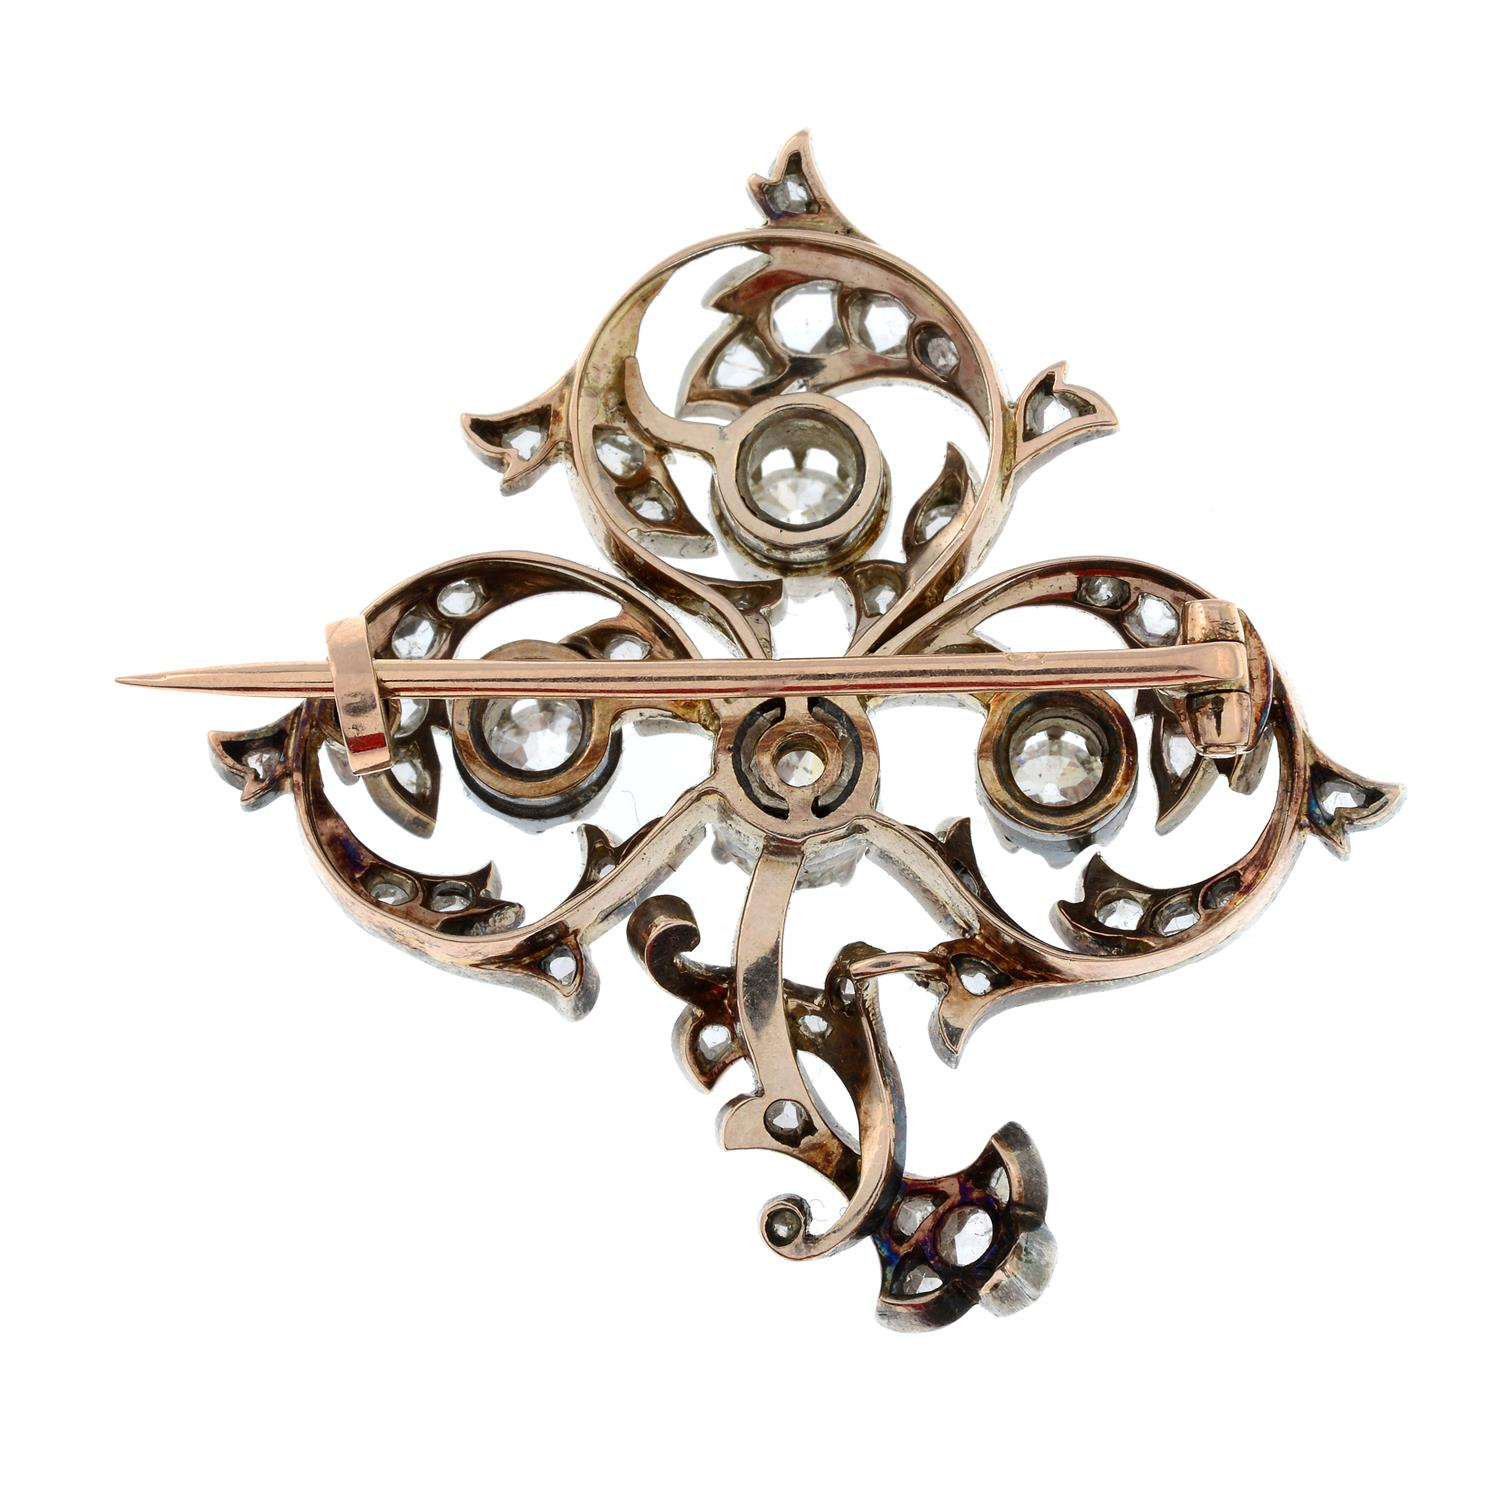 A late 19th century silver and gold, old and rose-cut diamond brooch. - Image 3 of 5